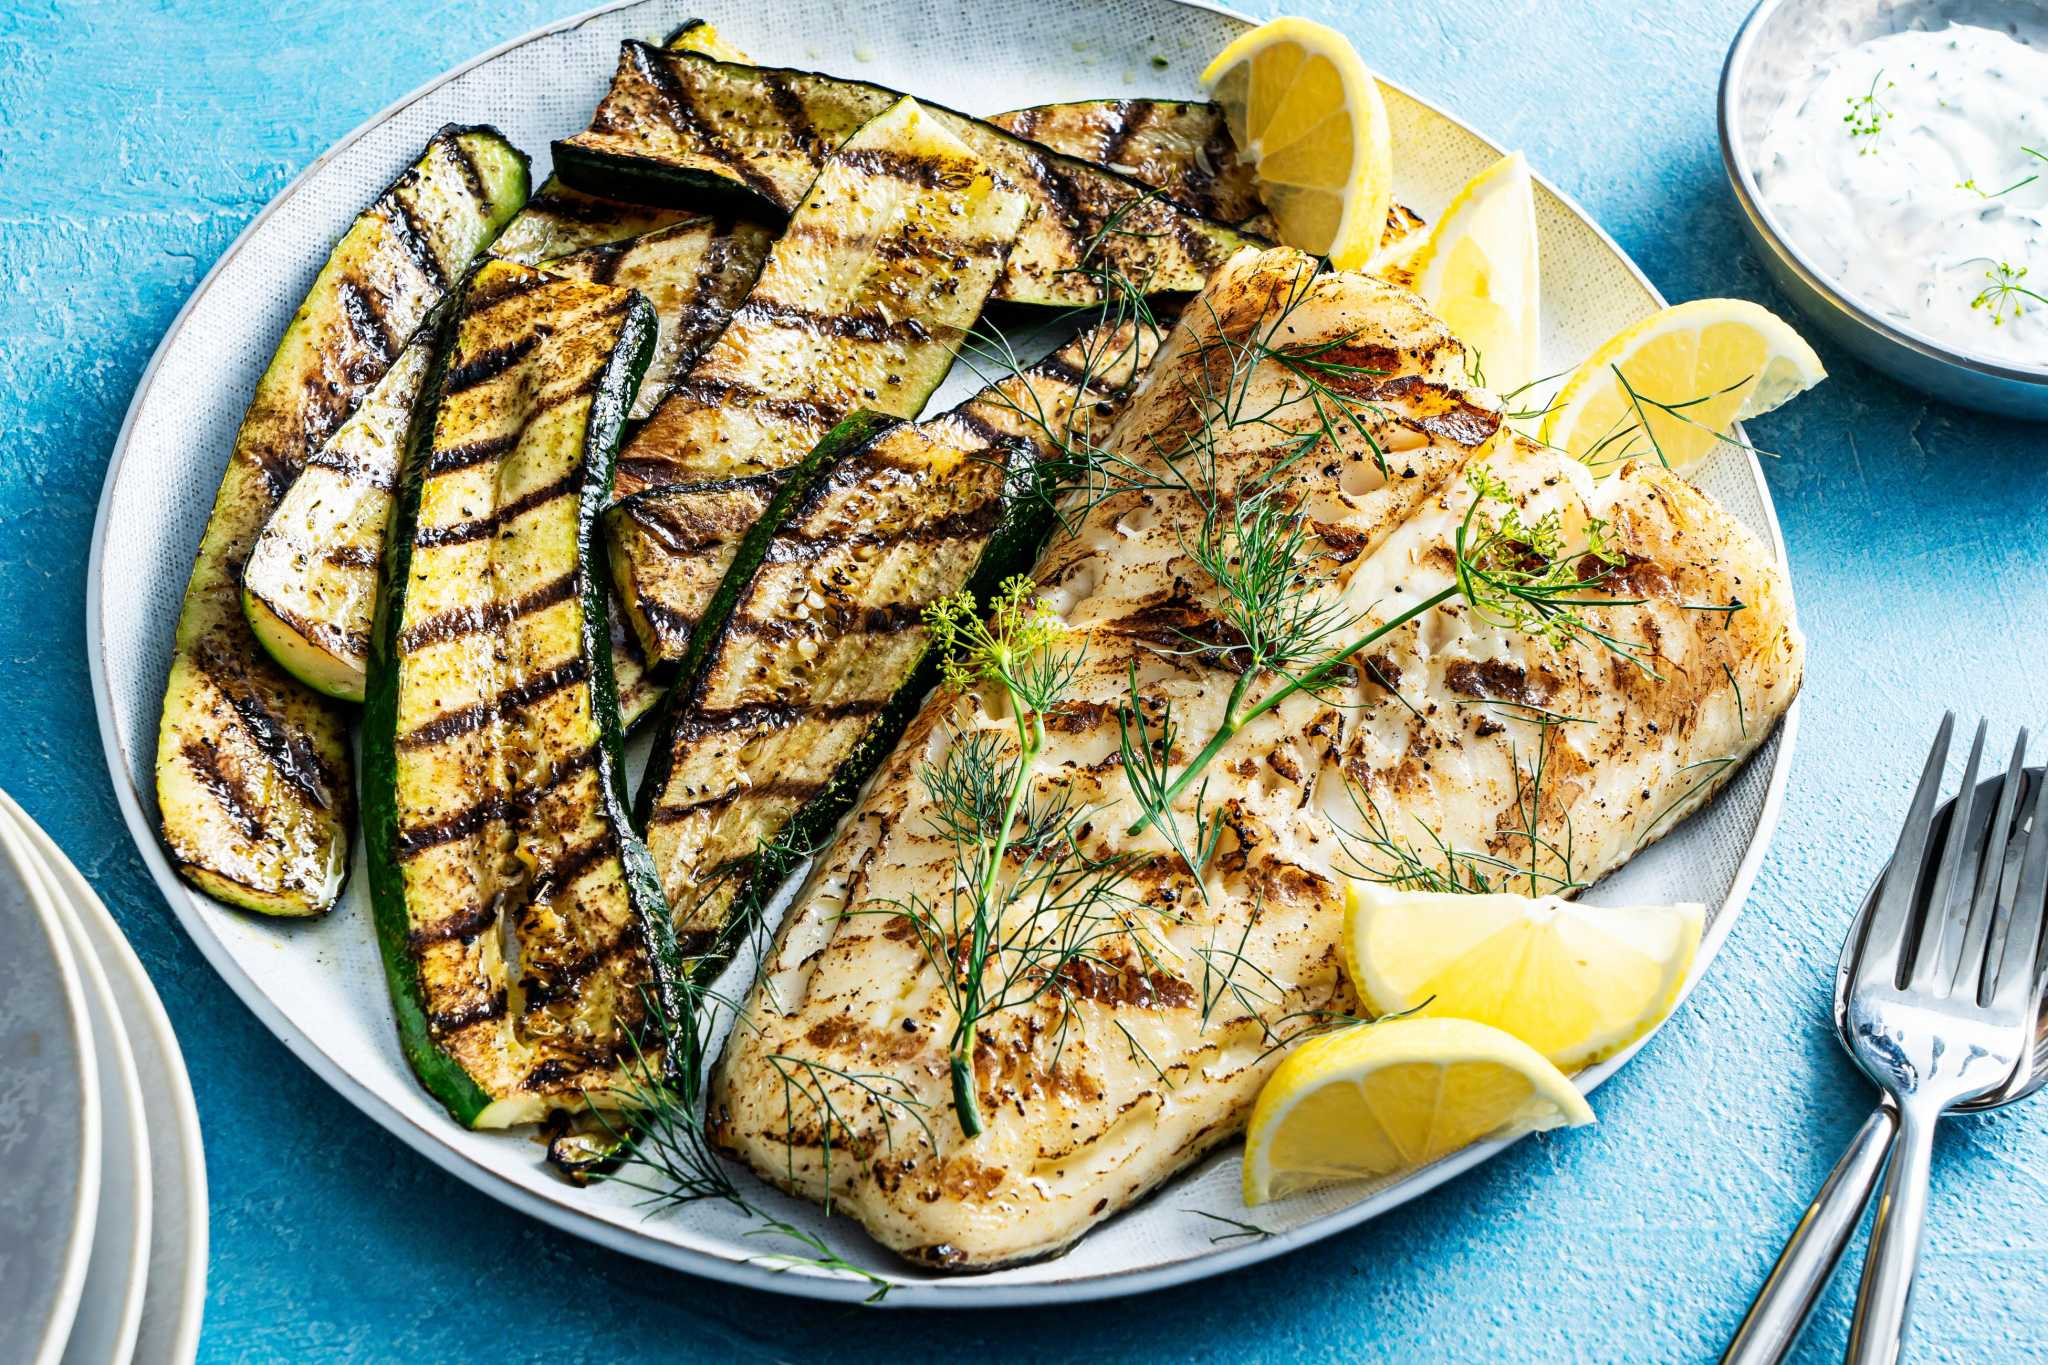 Want a surefire grilled fish recipe? This smoky sea bass with a 4-ingredient sauce is it.